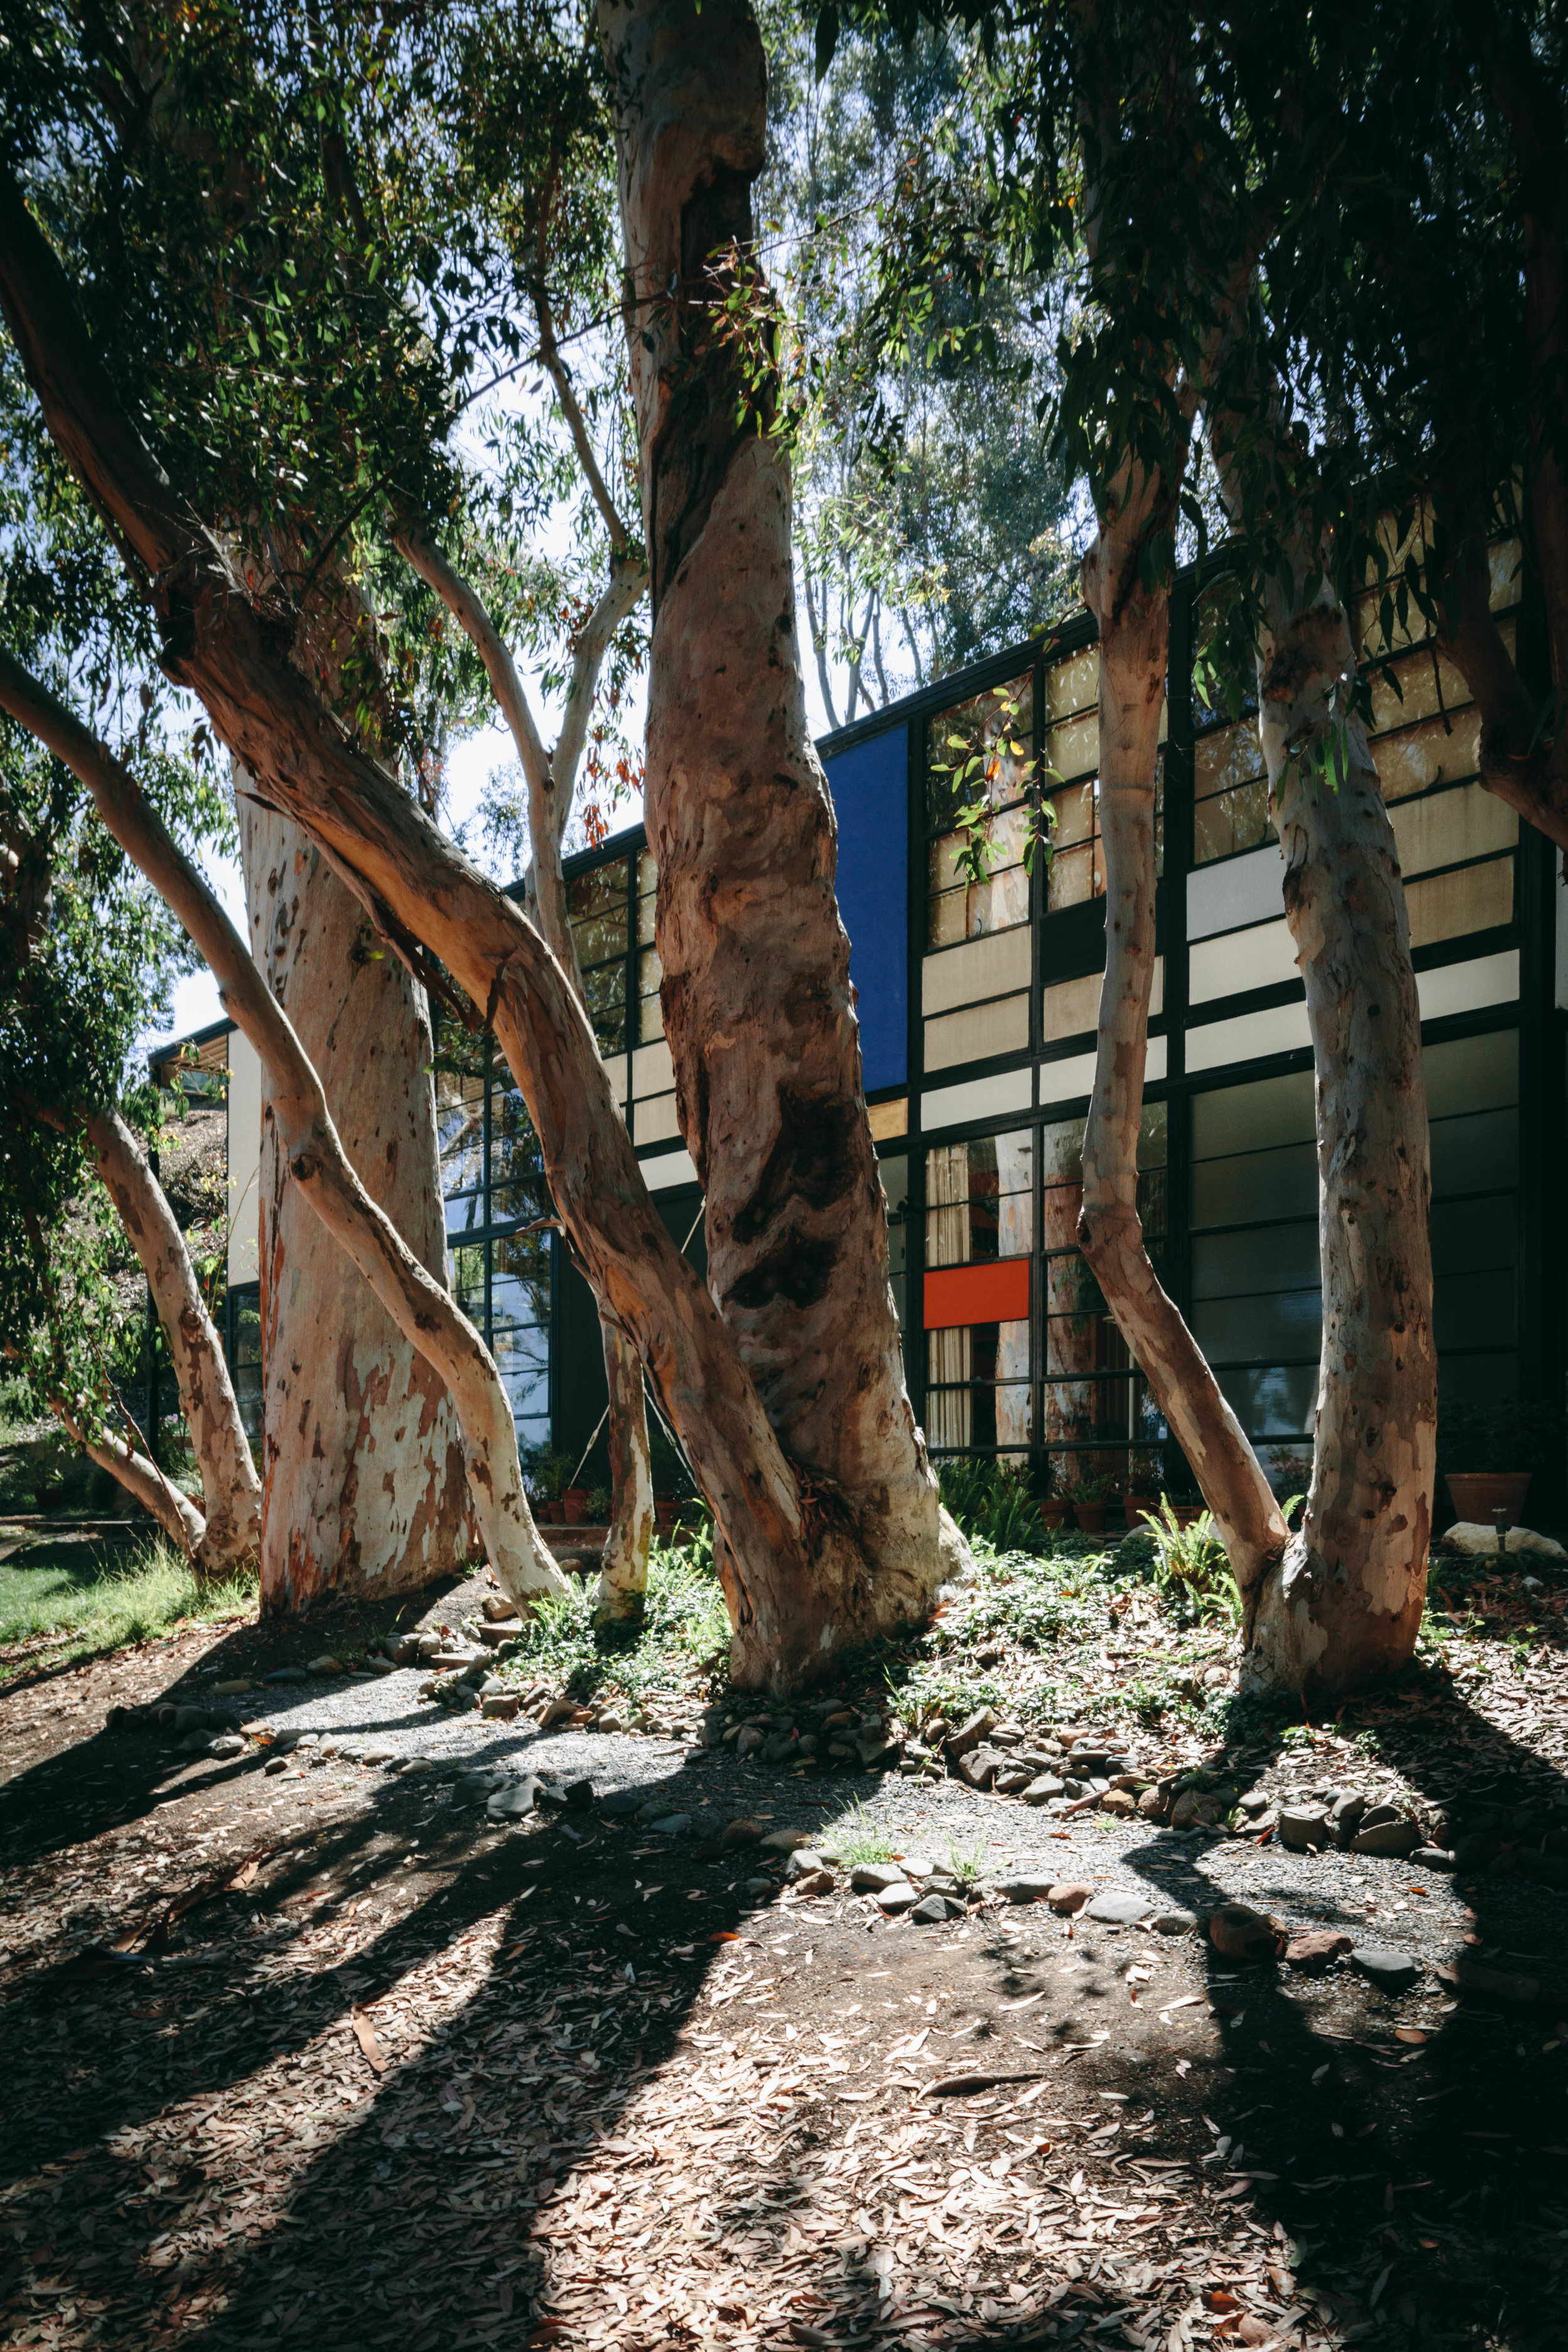 The Eames House, designed and lived in by iconic designers Charles and Ray Eames.